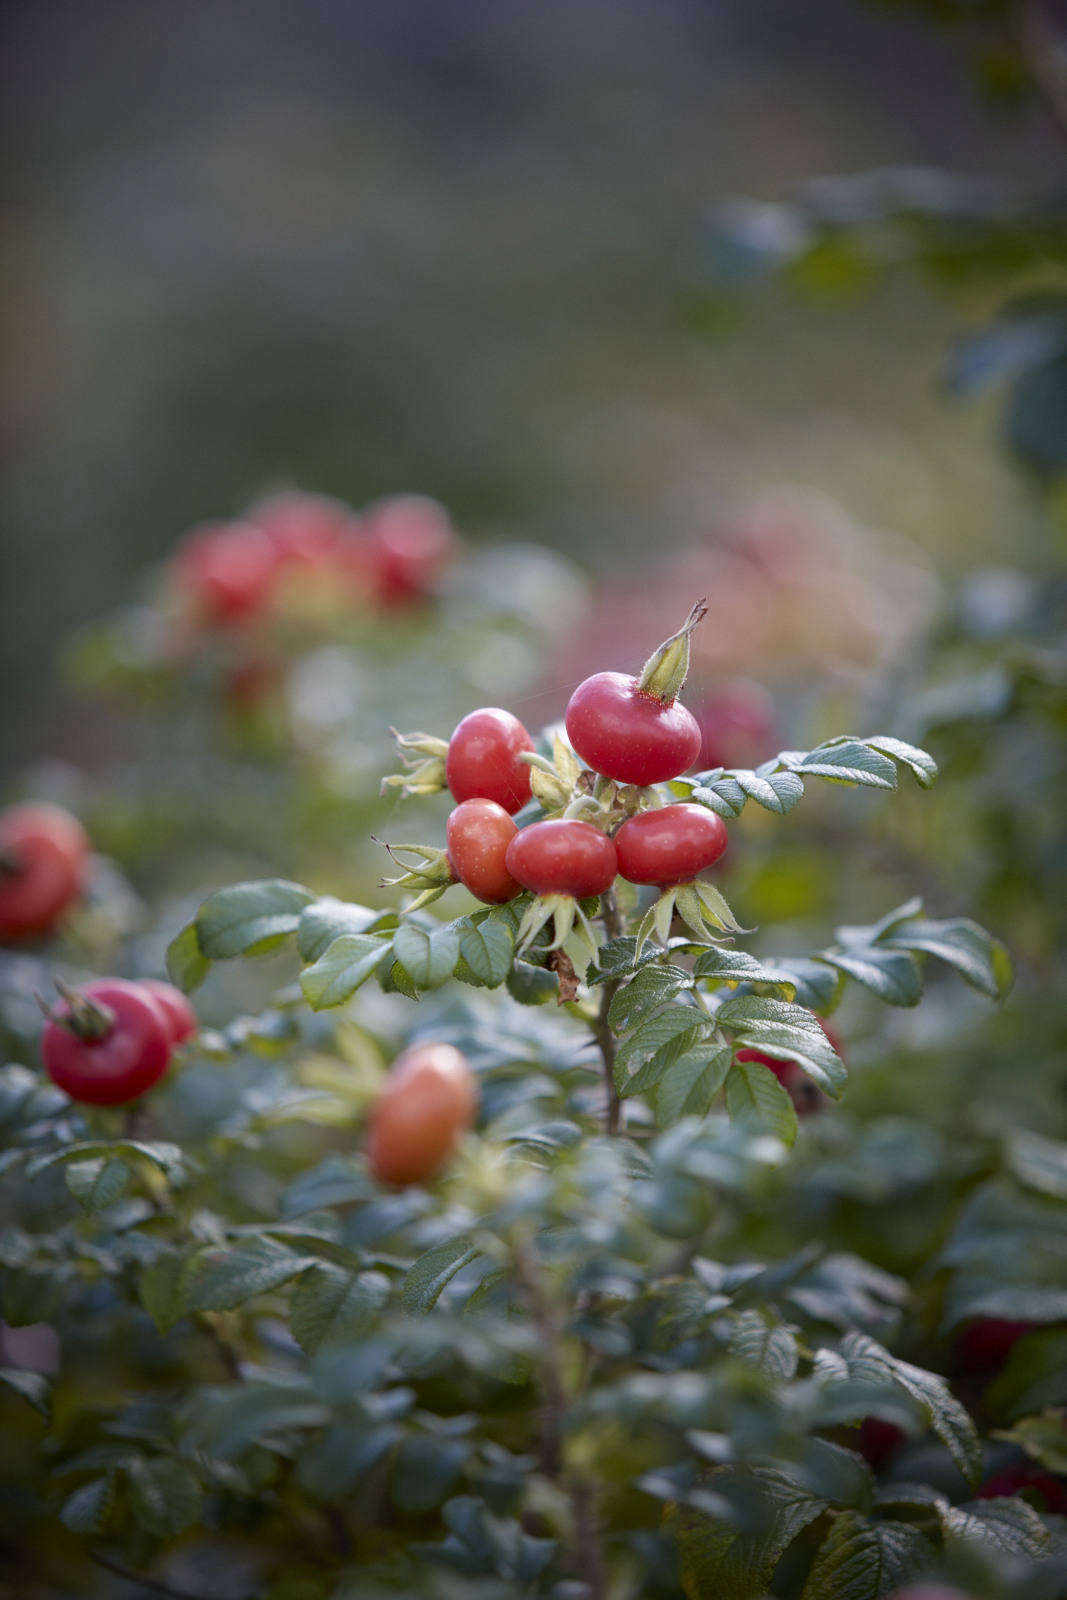 With the size and intensity of color of crabapples, rose hips are one of the joys of fall.